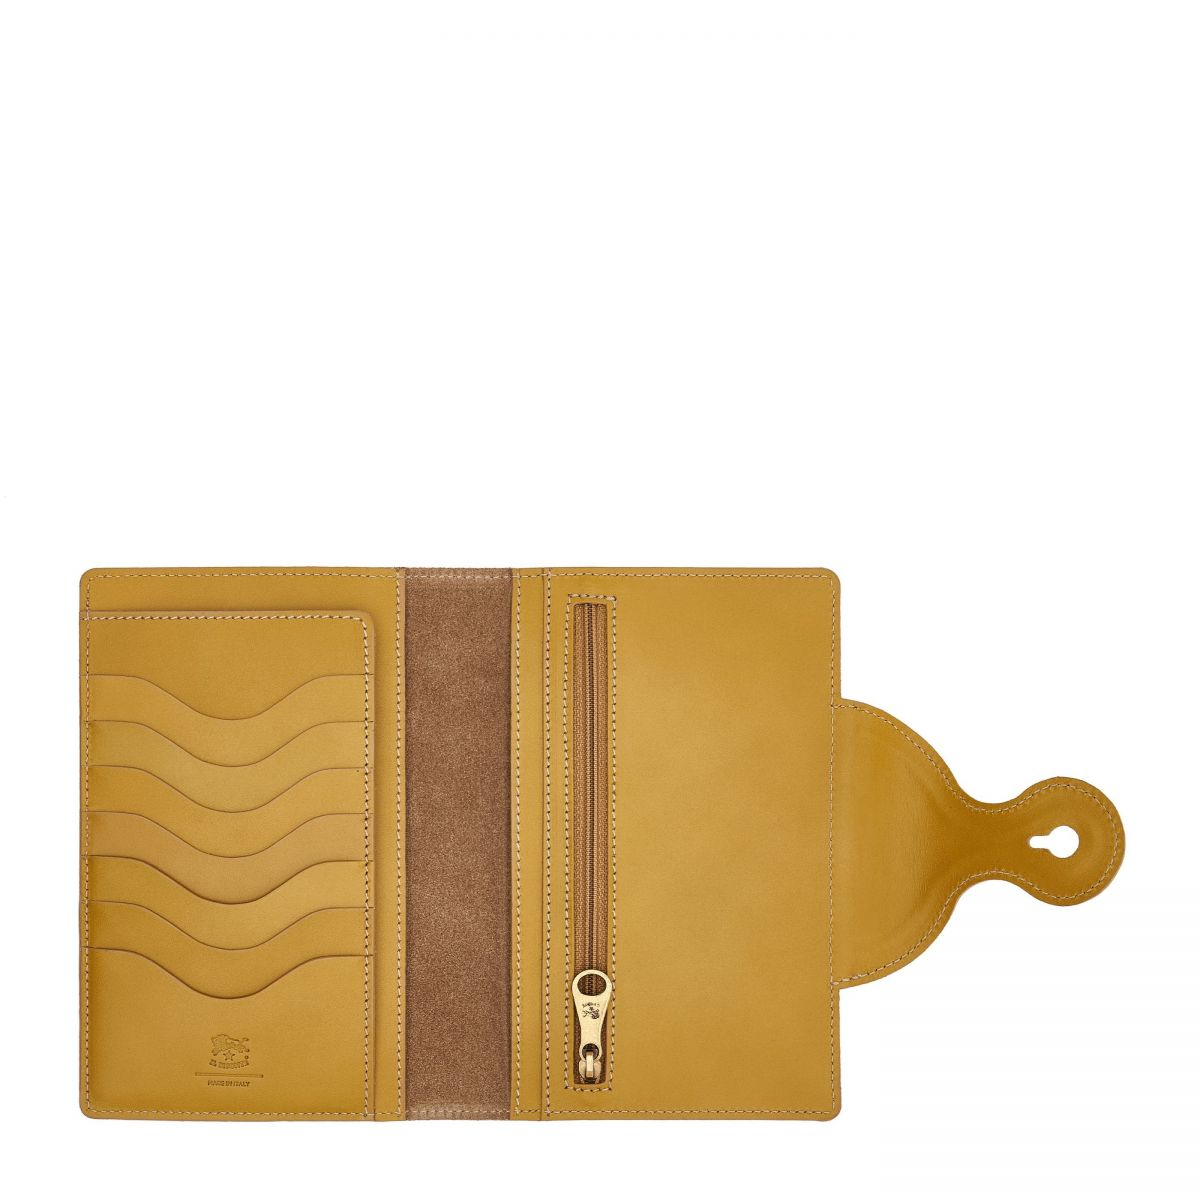 Women's Wallet Valentina in Cowhide Leather SMW105 color Curry   Details